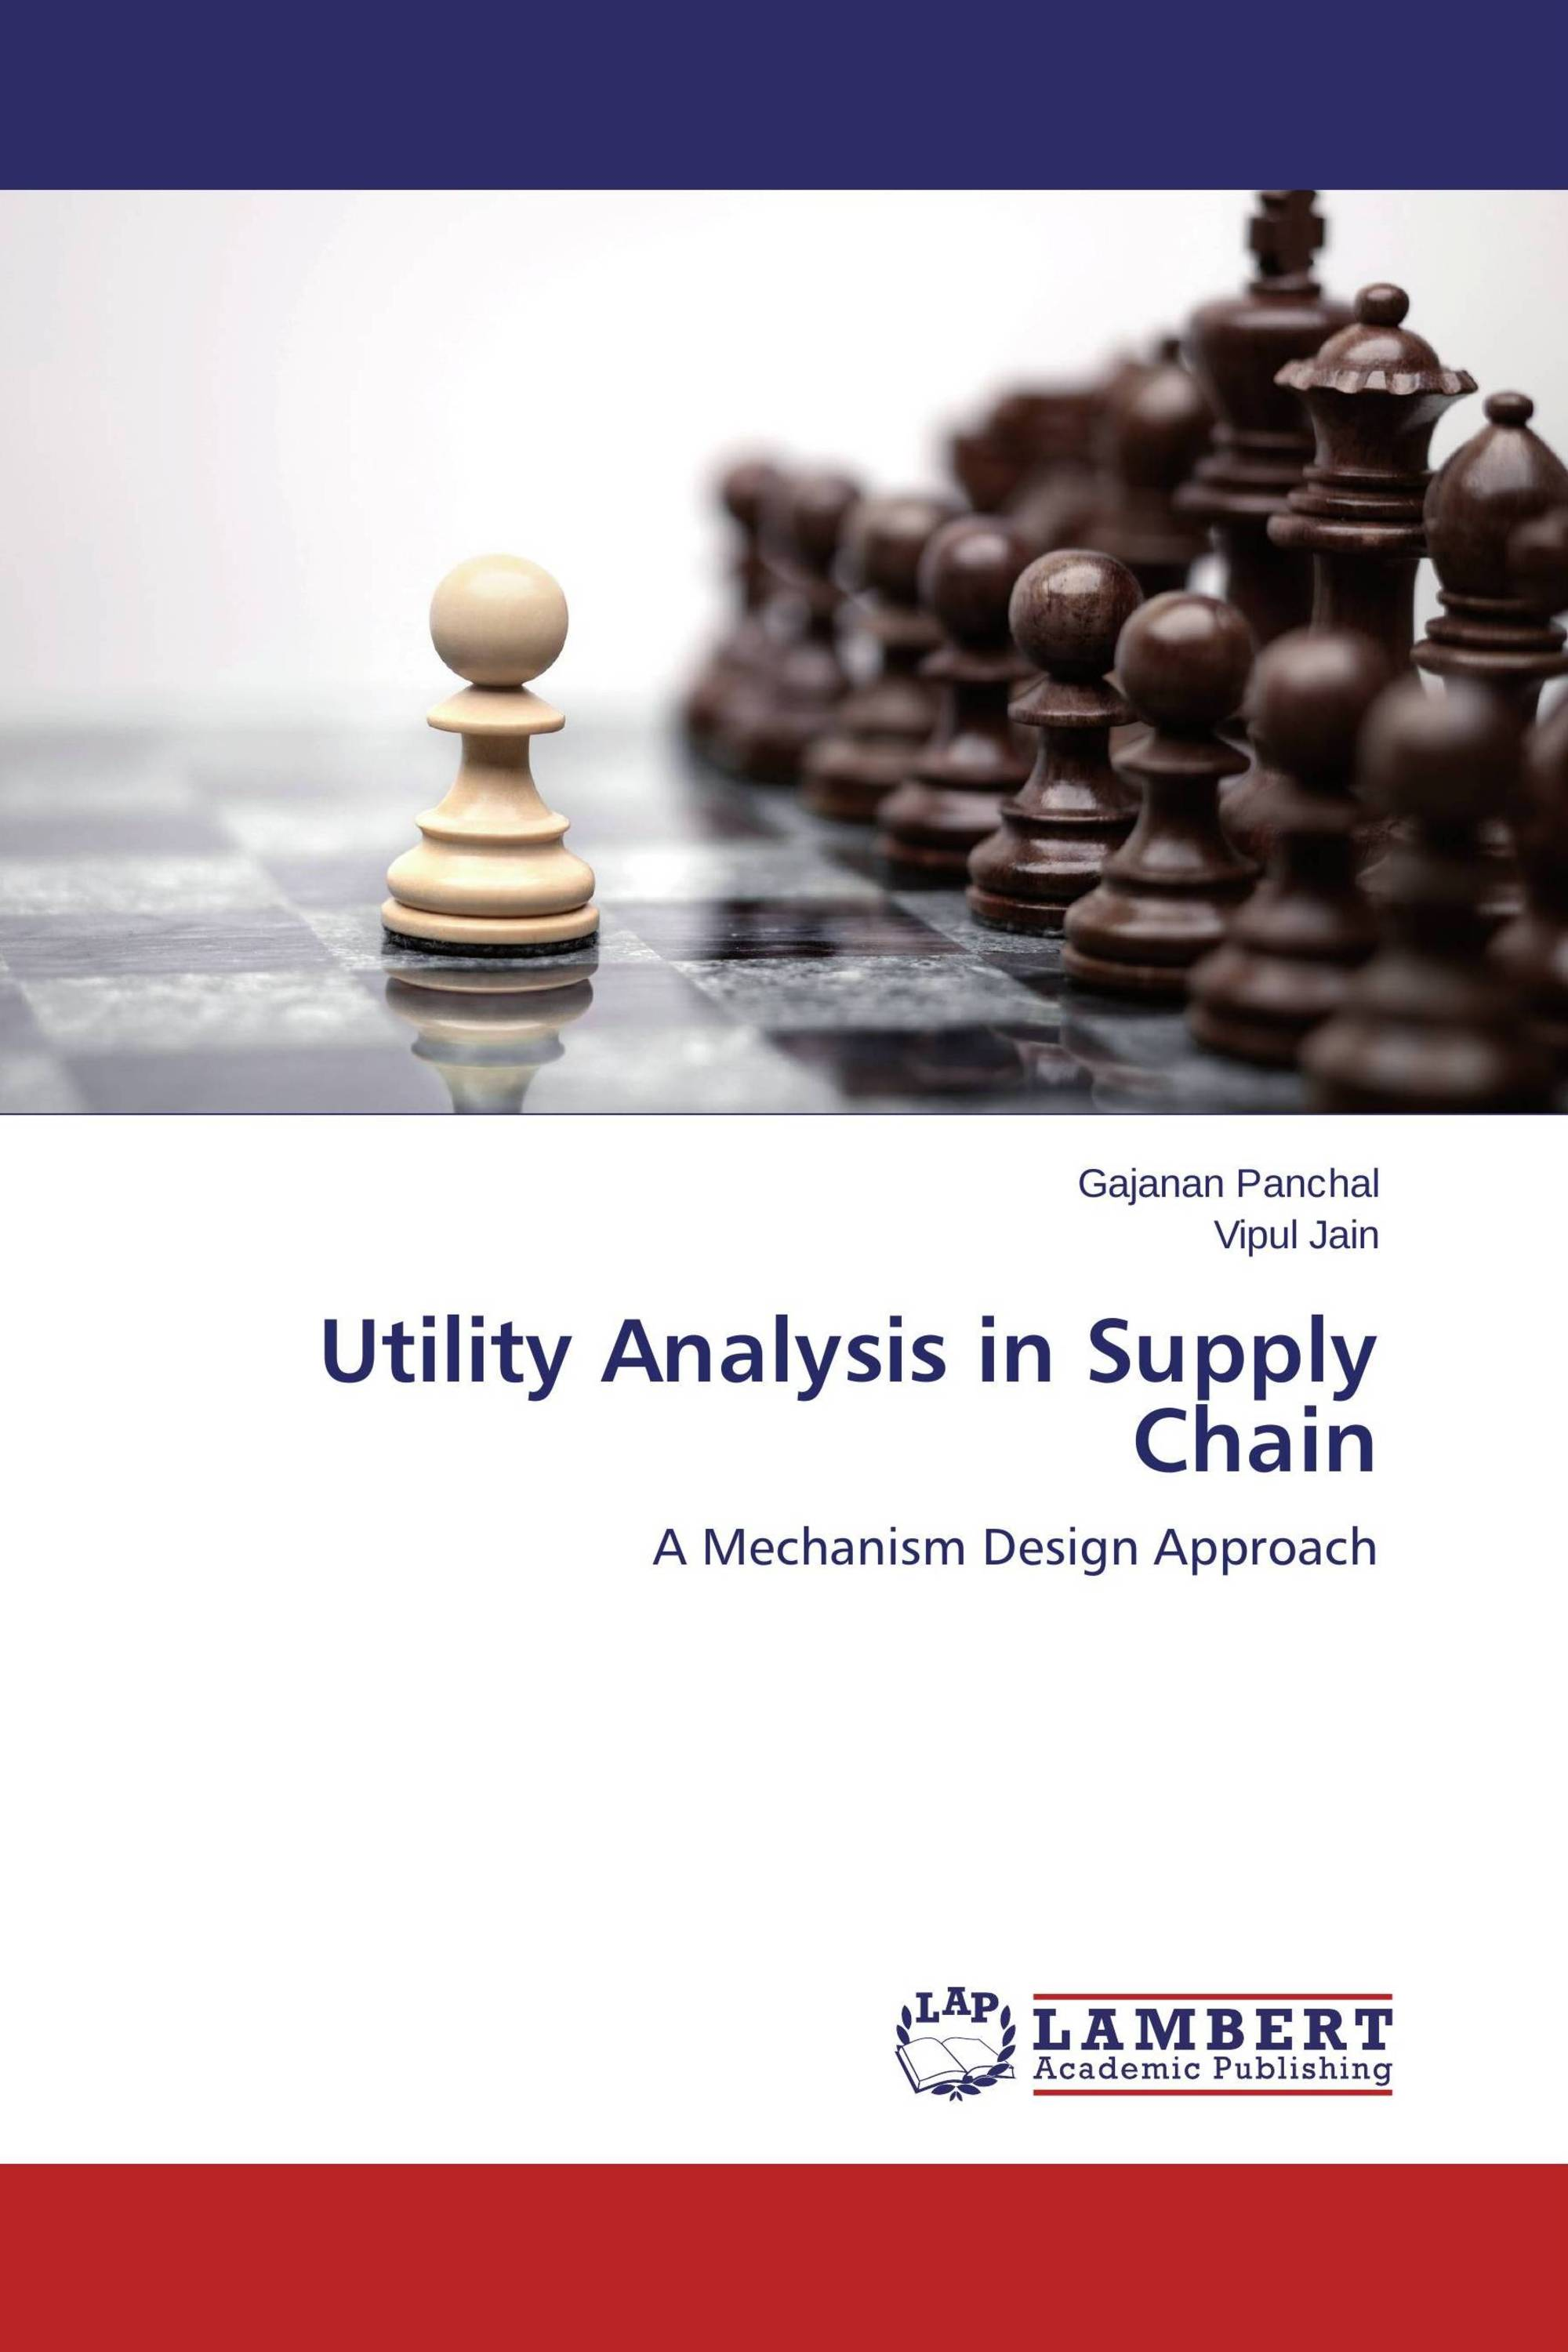 Utility Analysis in Supply Chain